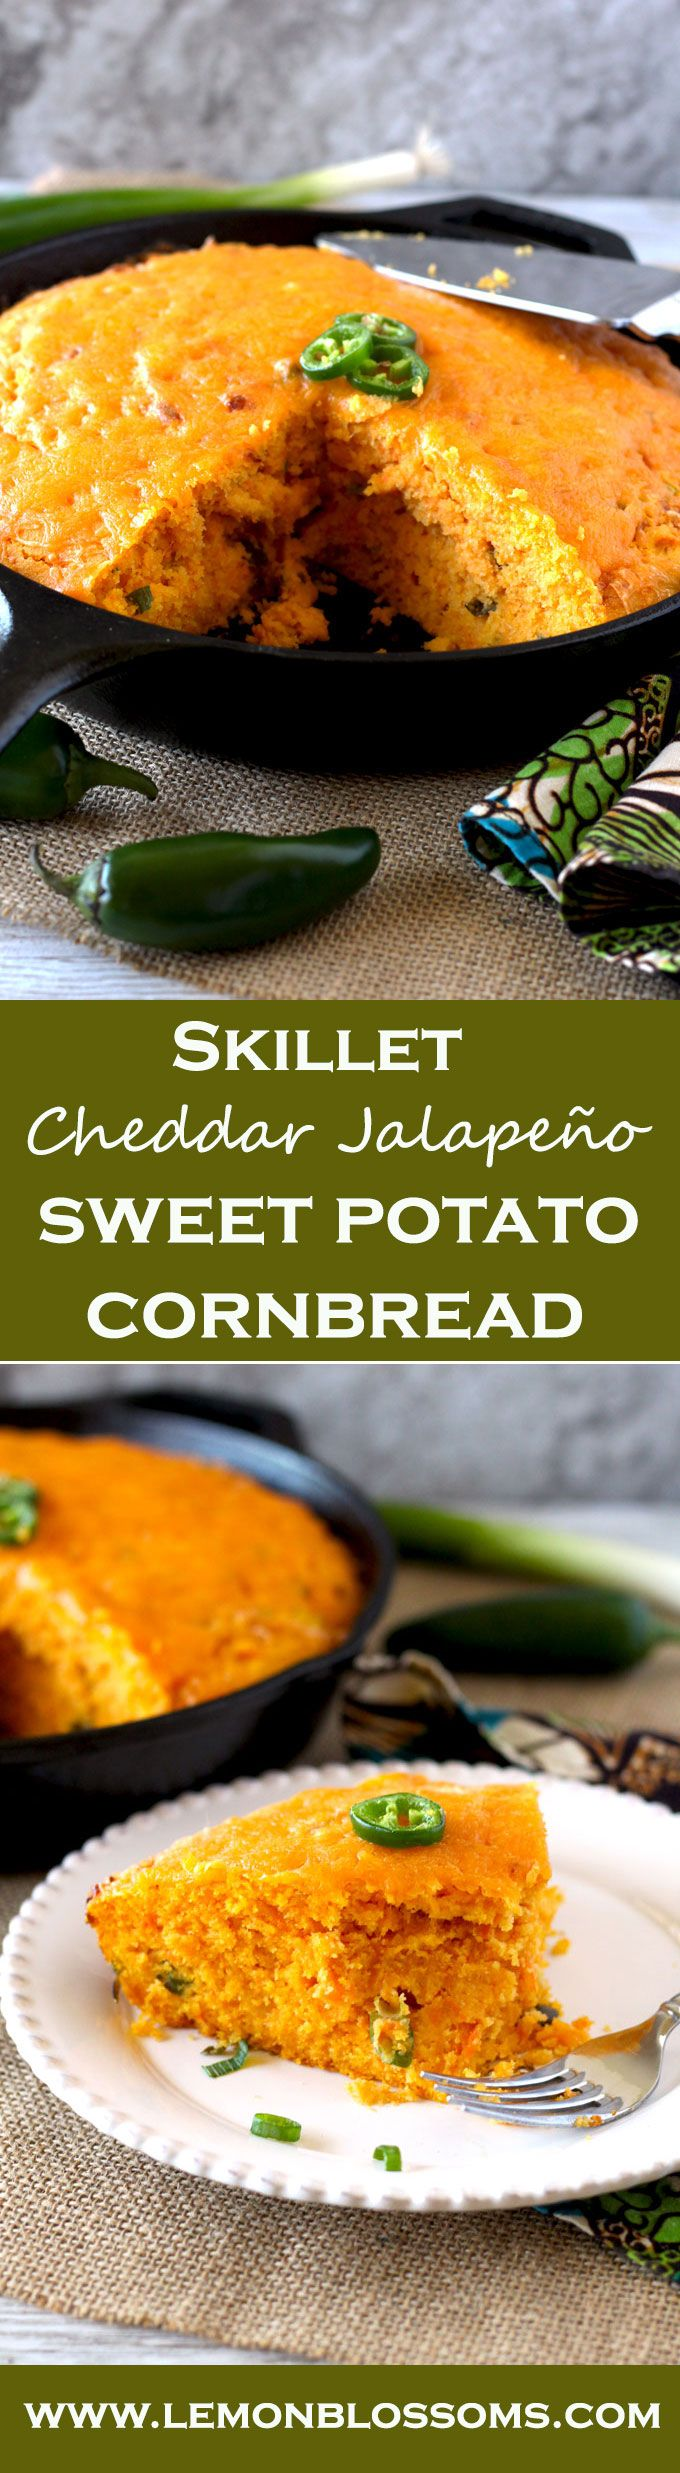 Not too spicy and super cheesy, this Skillet Cheddar Jalapeno Sweet Potato Cornbread is moist and savory with a little hint of natural sweetness from the oven roasted sweet potatoes